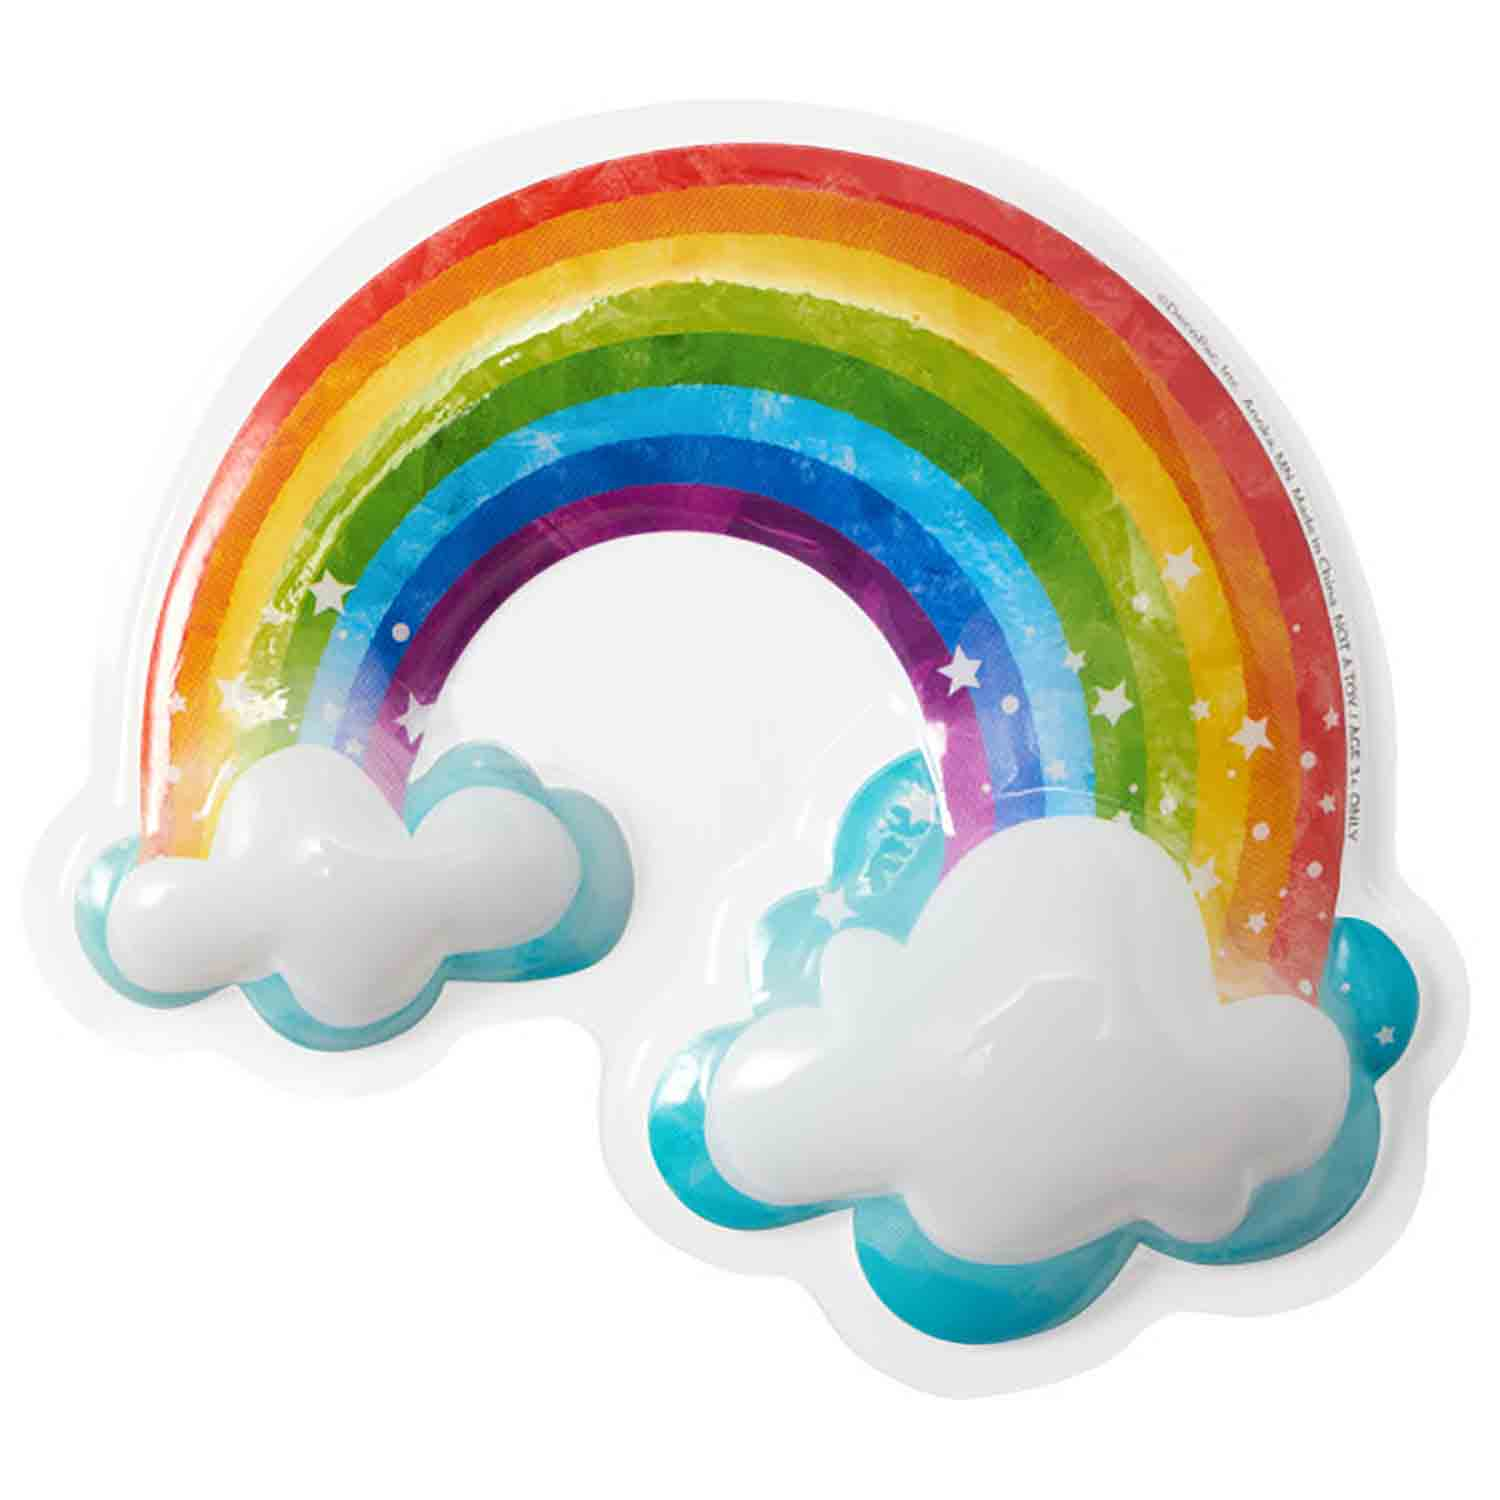 Rainbow with Clouds Cake Topper